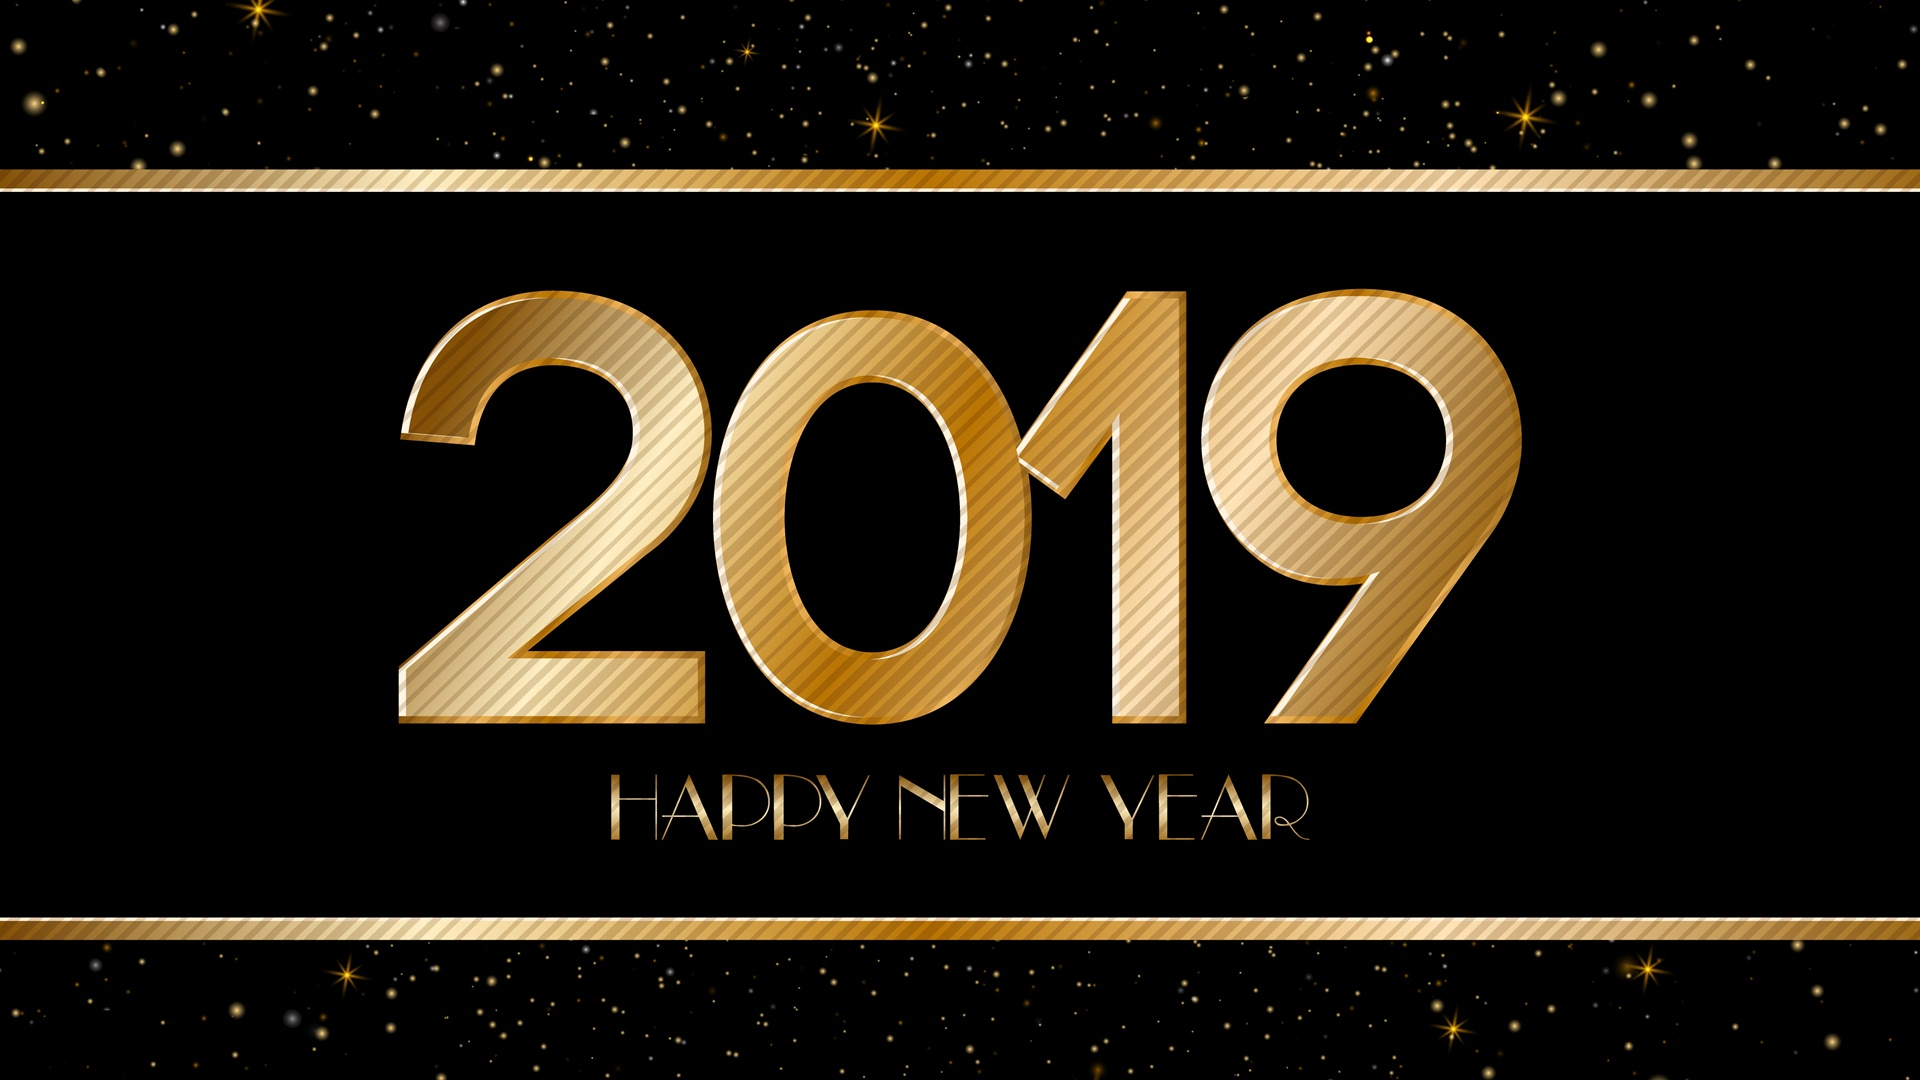 2019 New Year HD Wallpaper 1080p